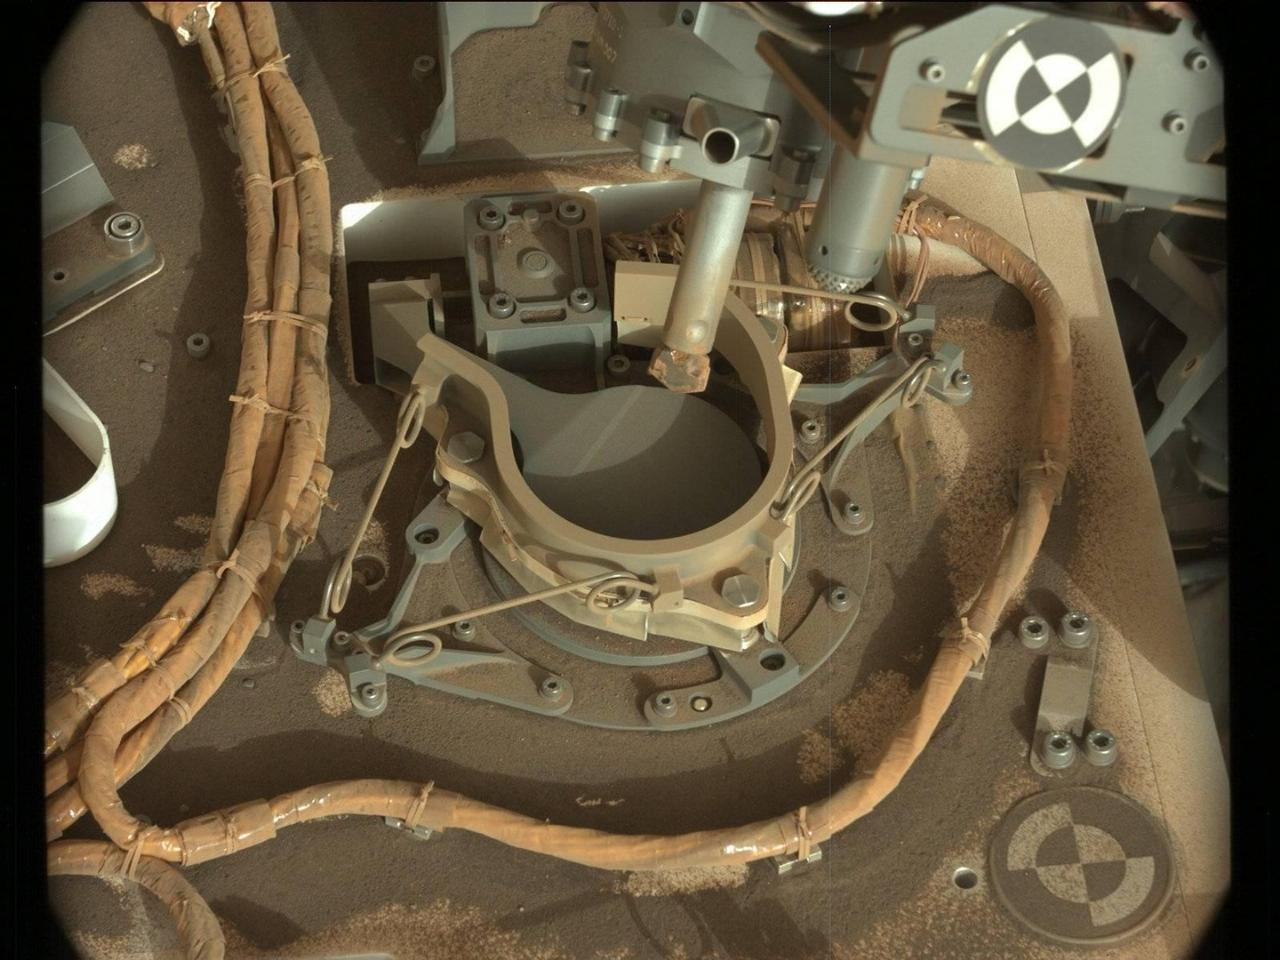 The drill bit of NASA's Curiosity Mars rover over one of the sample inlets on the rover's deck